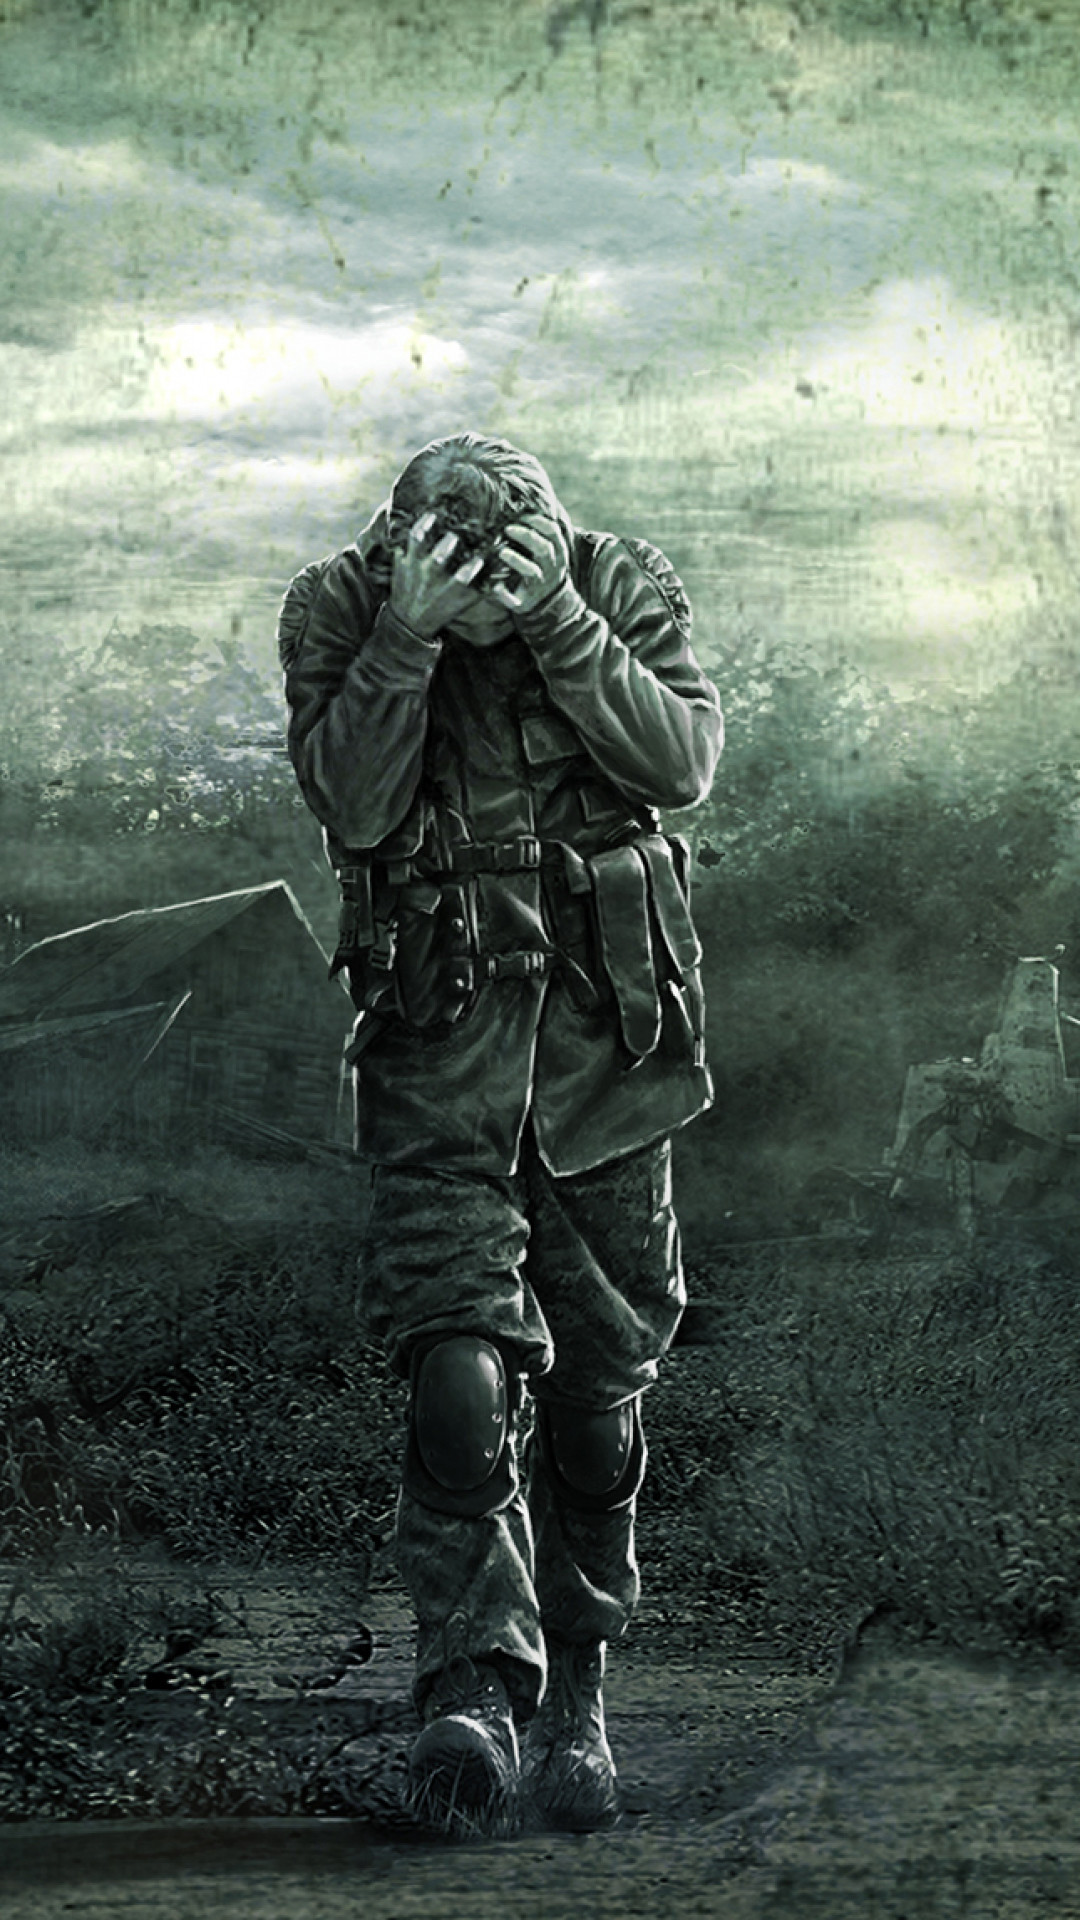 1080x1920  Wallpaper stalker, pripyat, art, soldiers